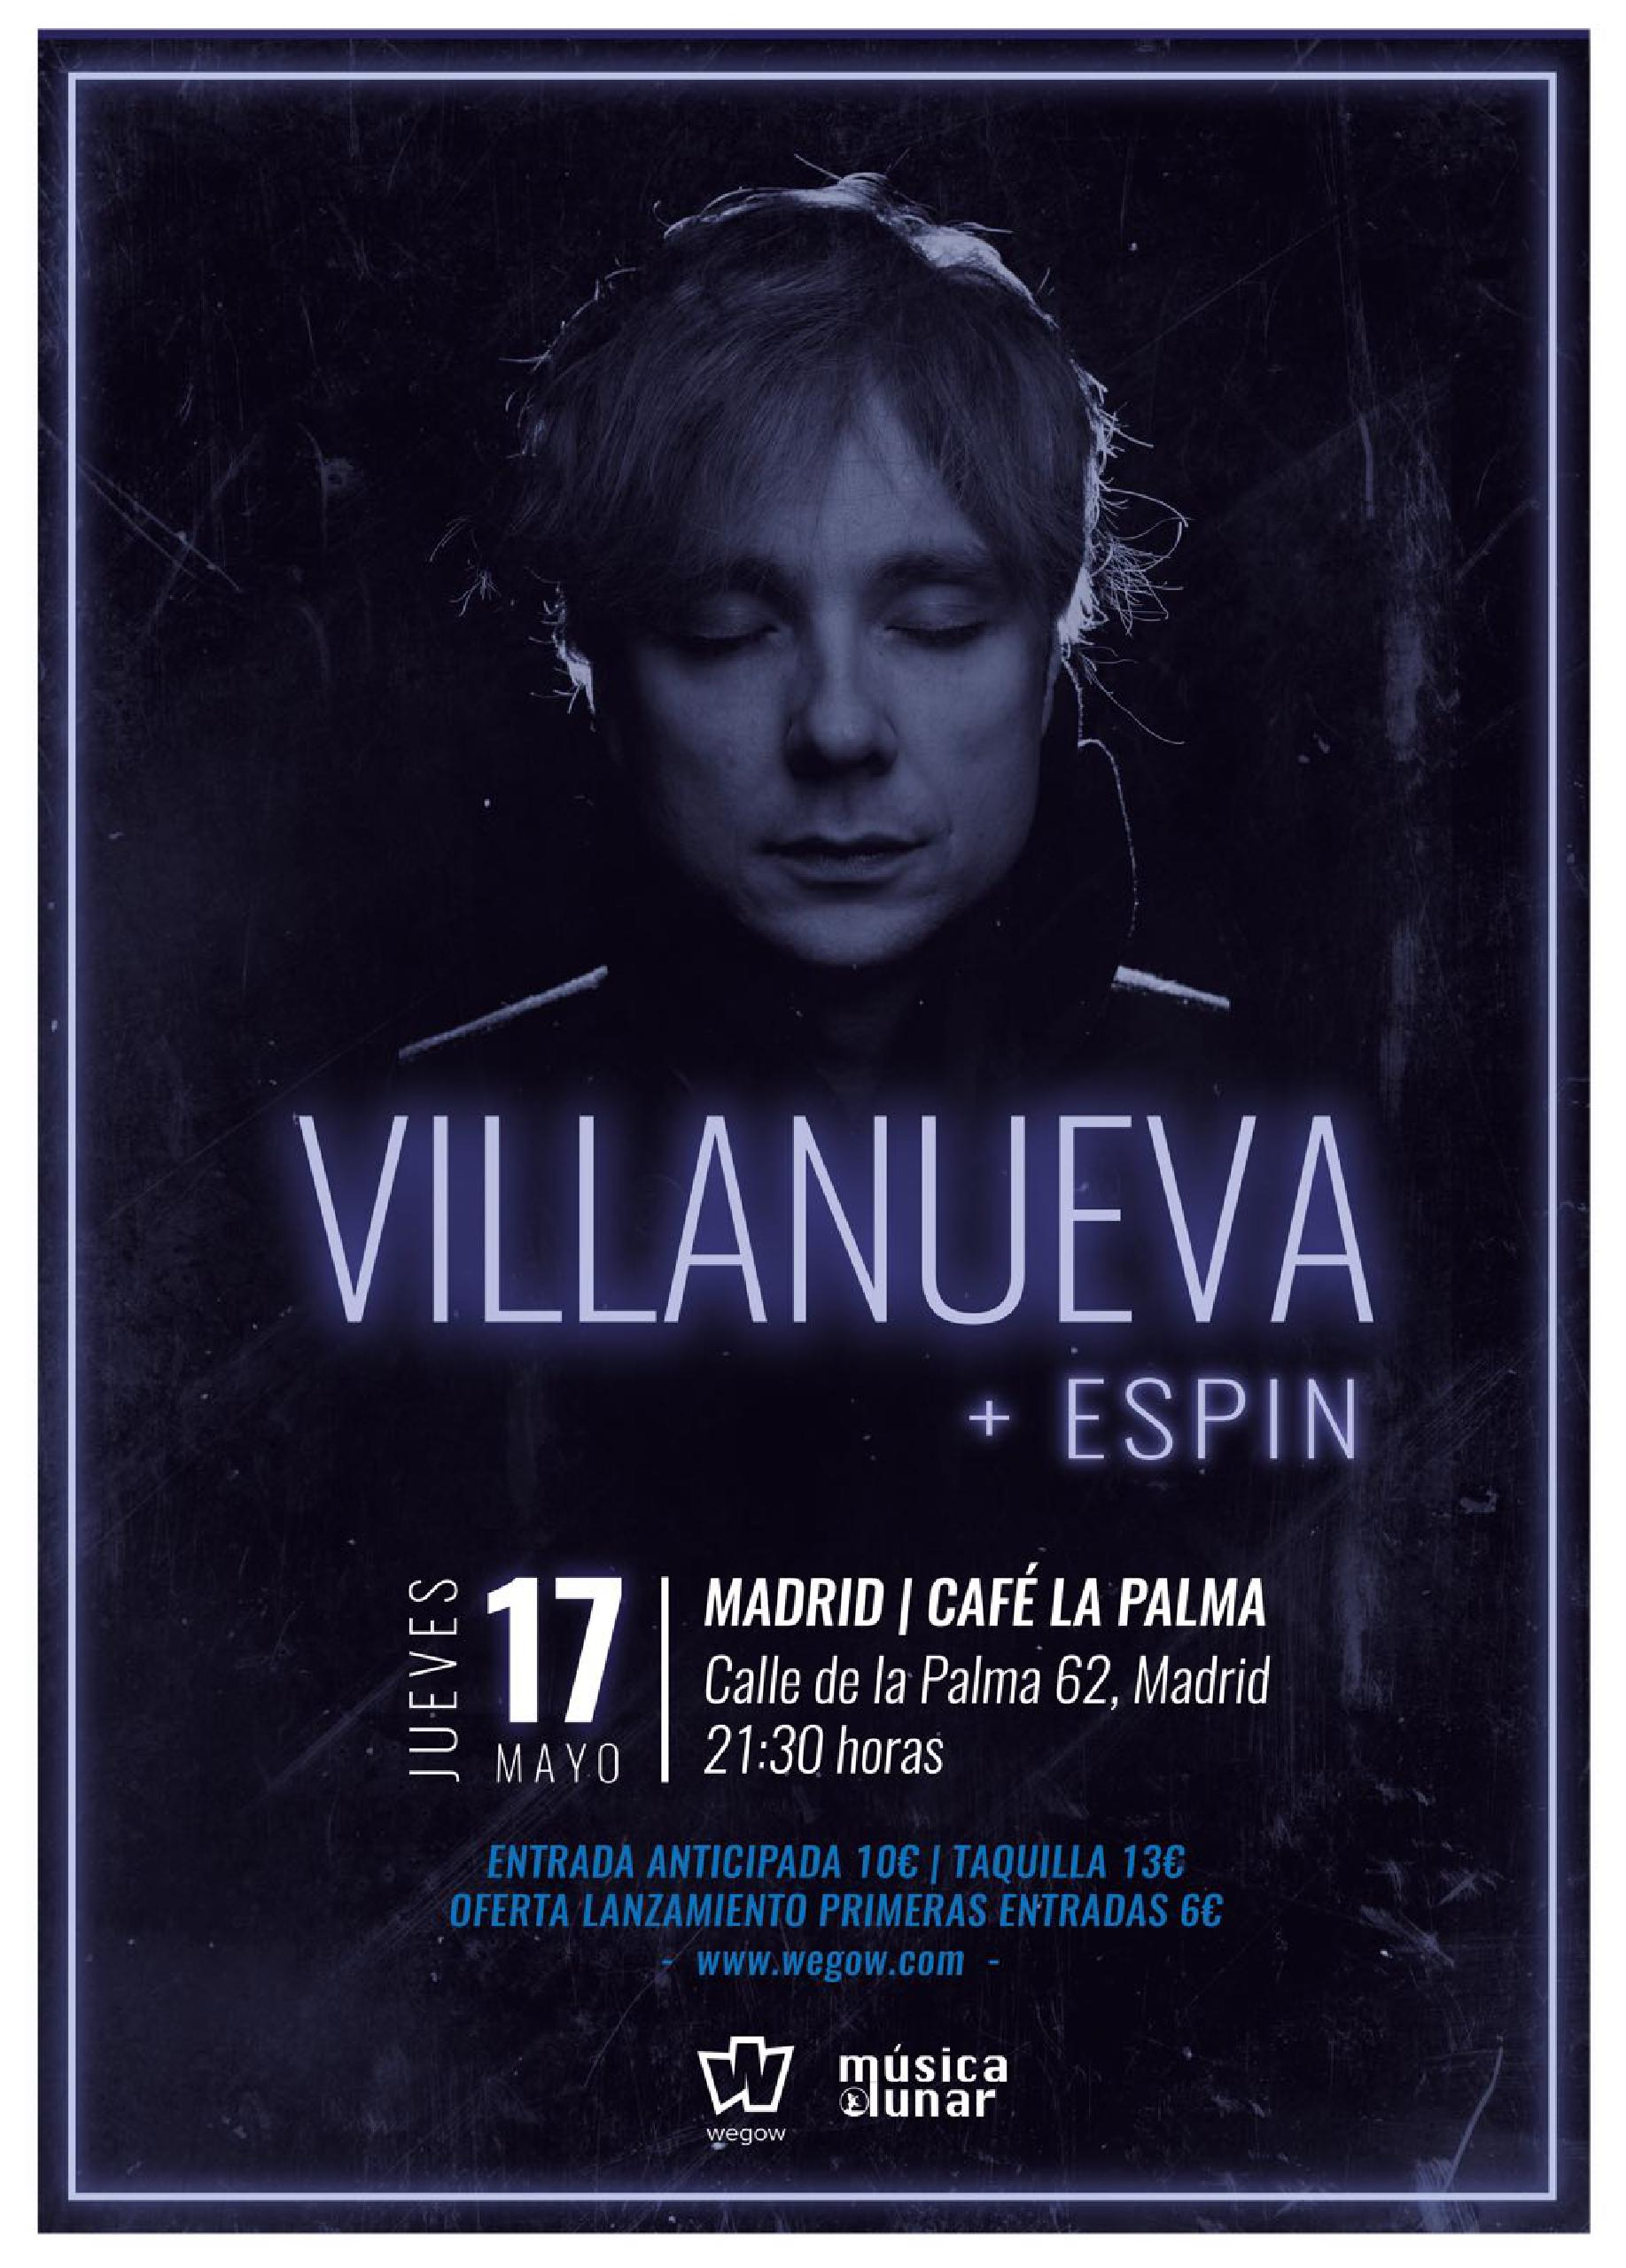 Villanueva en Madrid